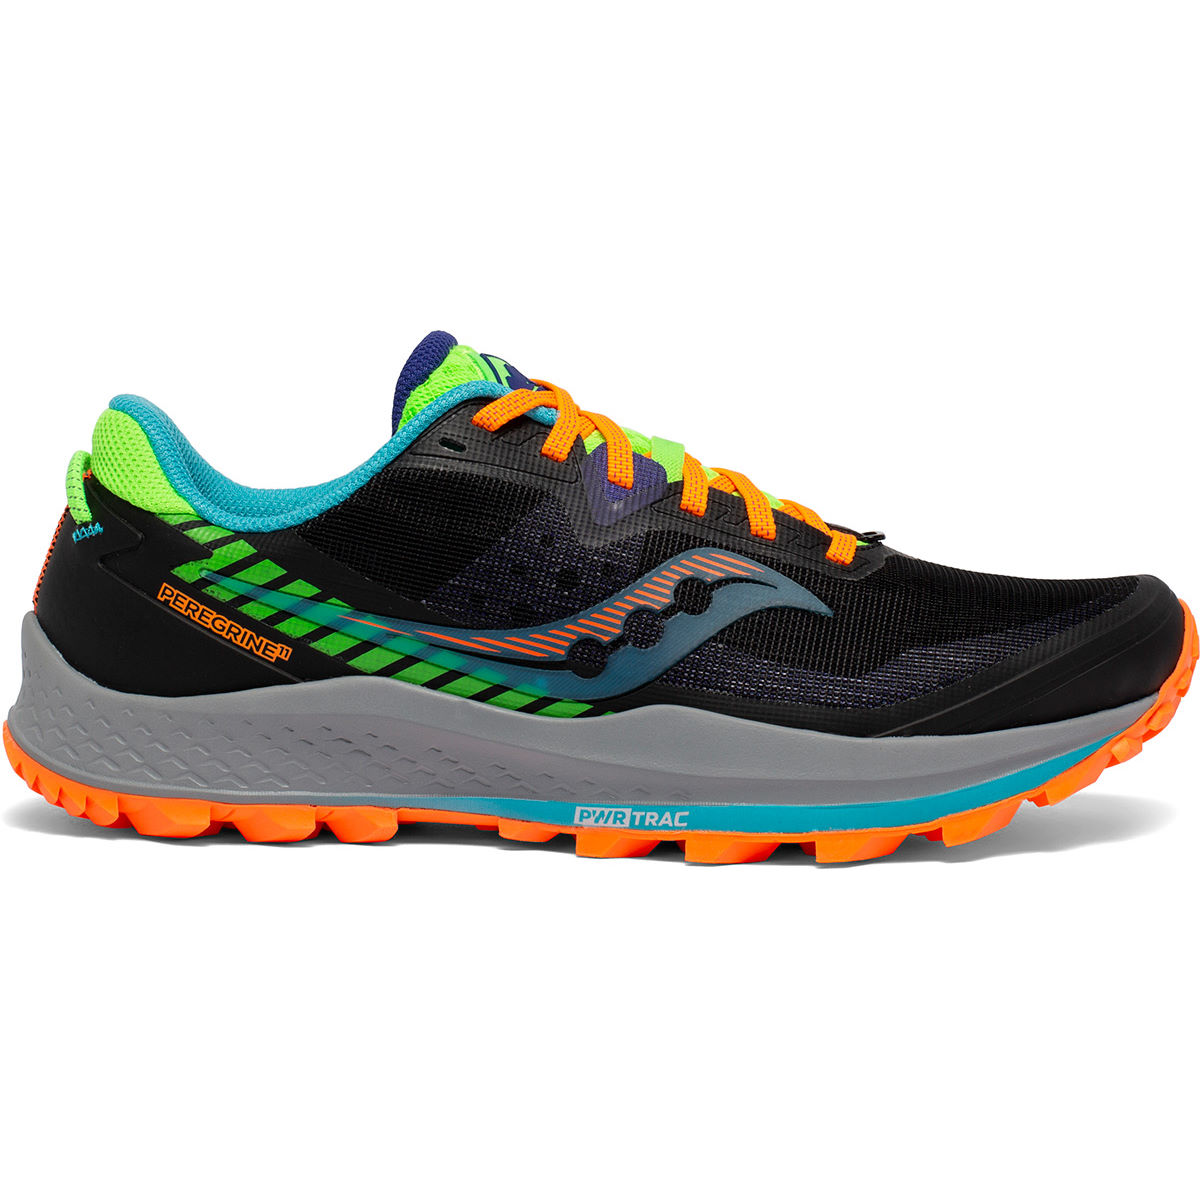 Saucony Peregrine 11 Running Shoes - Uk 11 Future Black  Trail Shoes